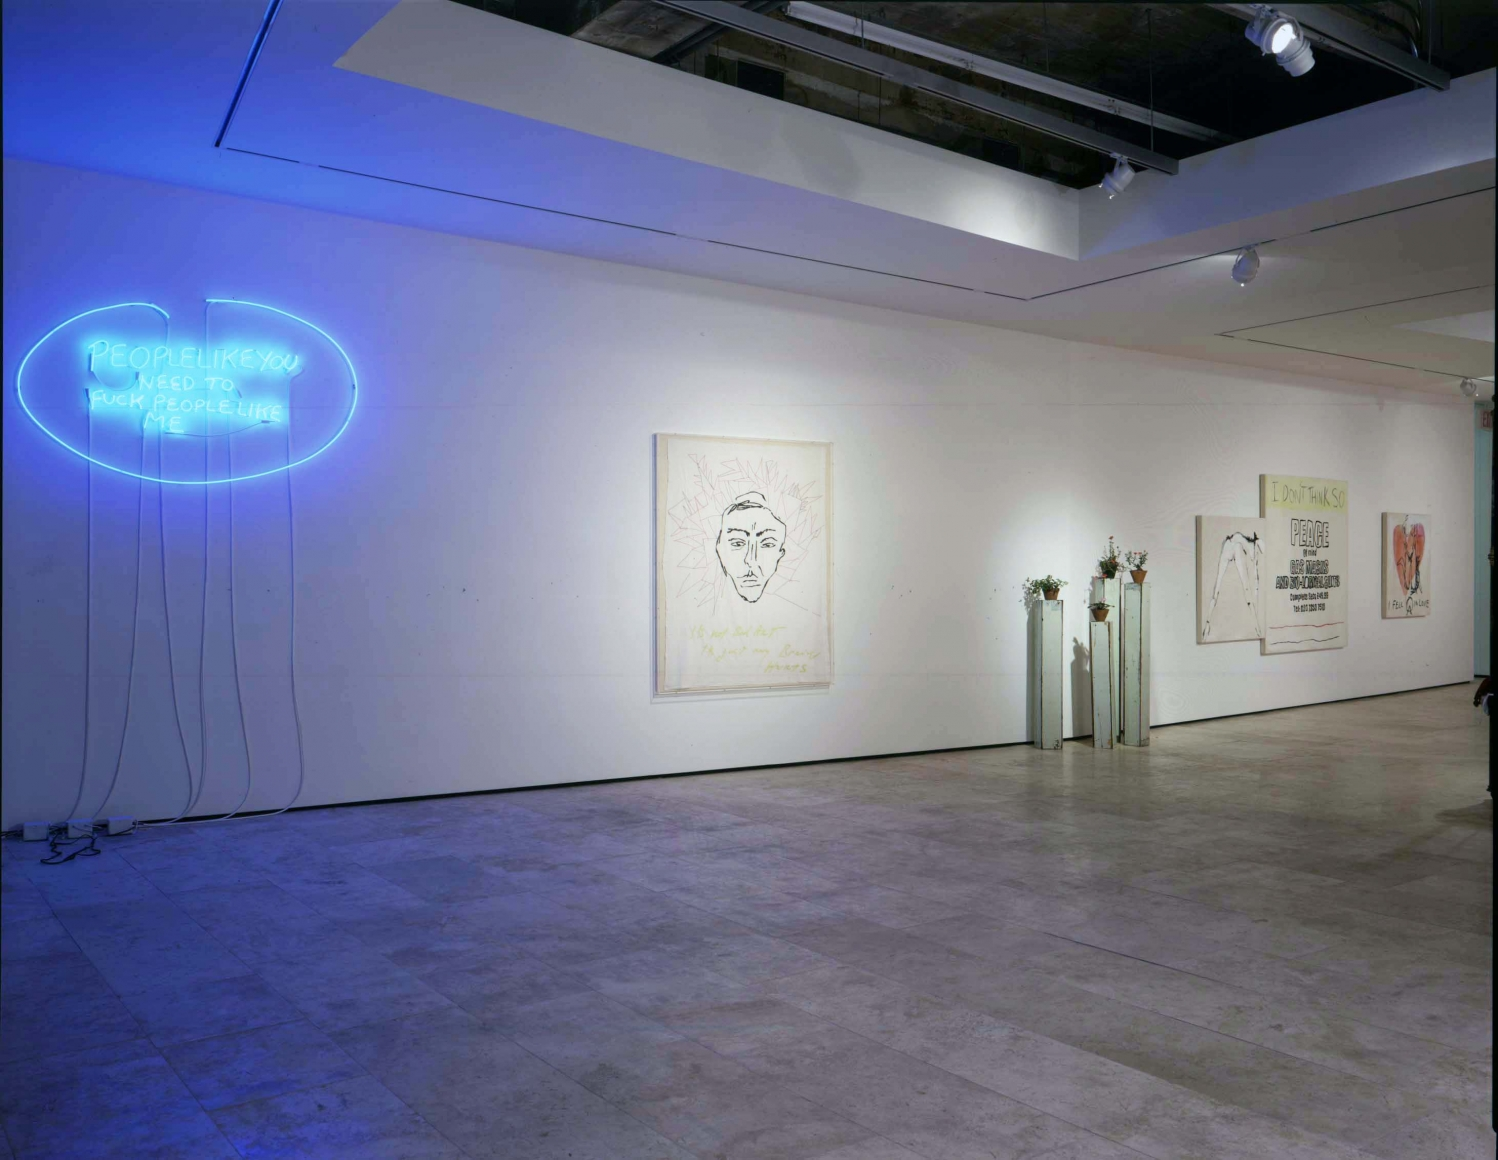 Tracey Emin: I Think It's In My Head Installation view, Lehmann Maupin Gallery 21 September - 19 October 2002 view 4